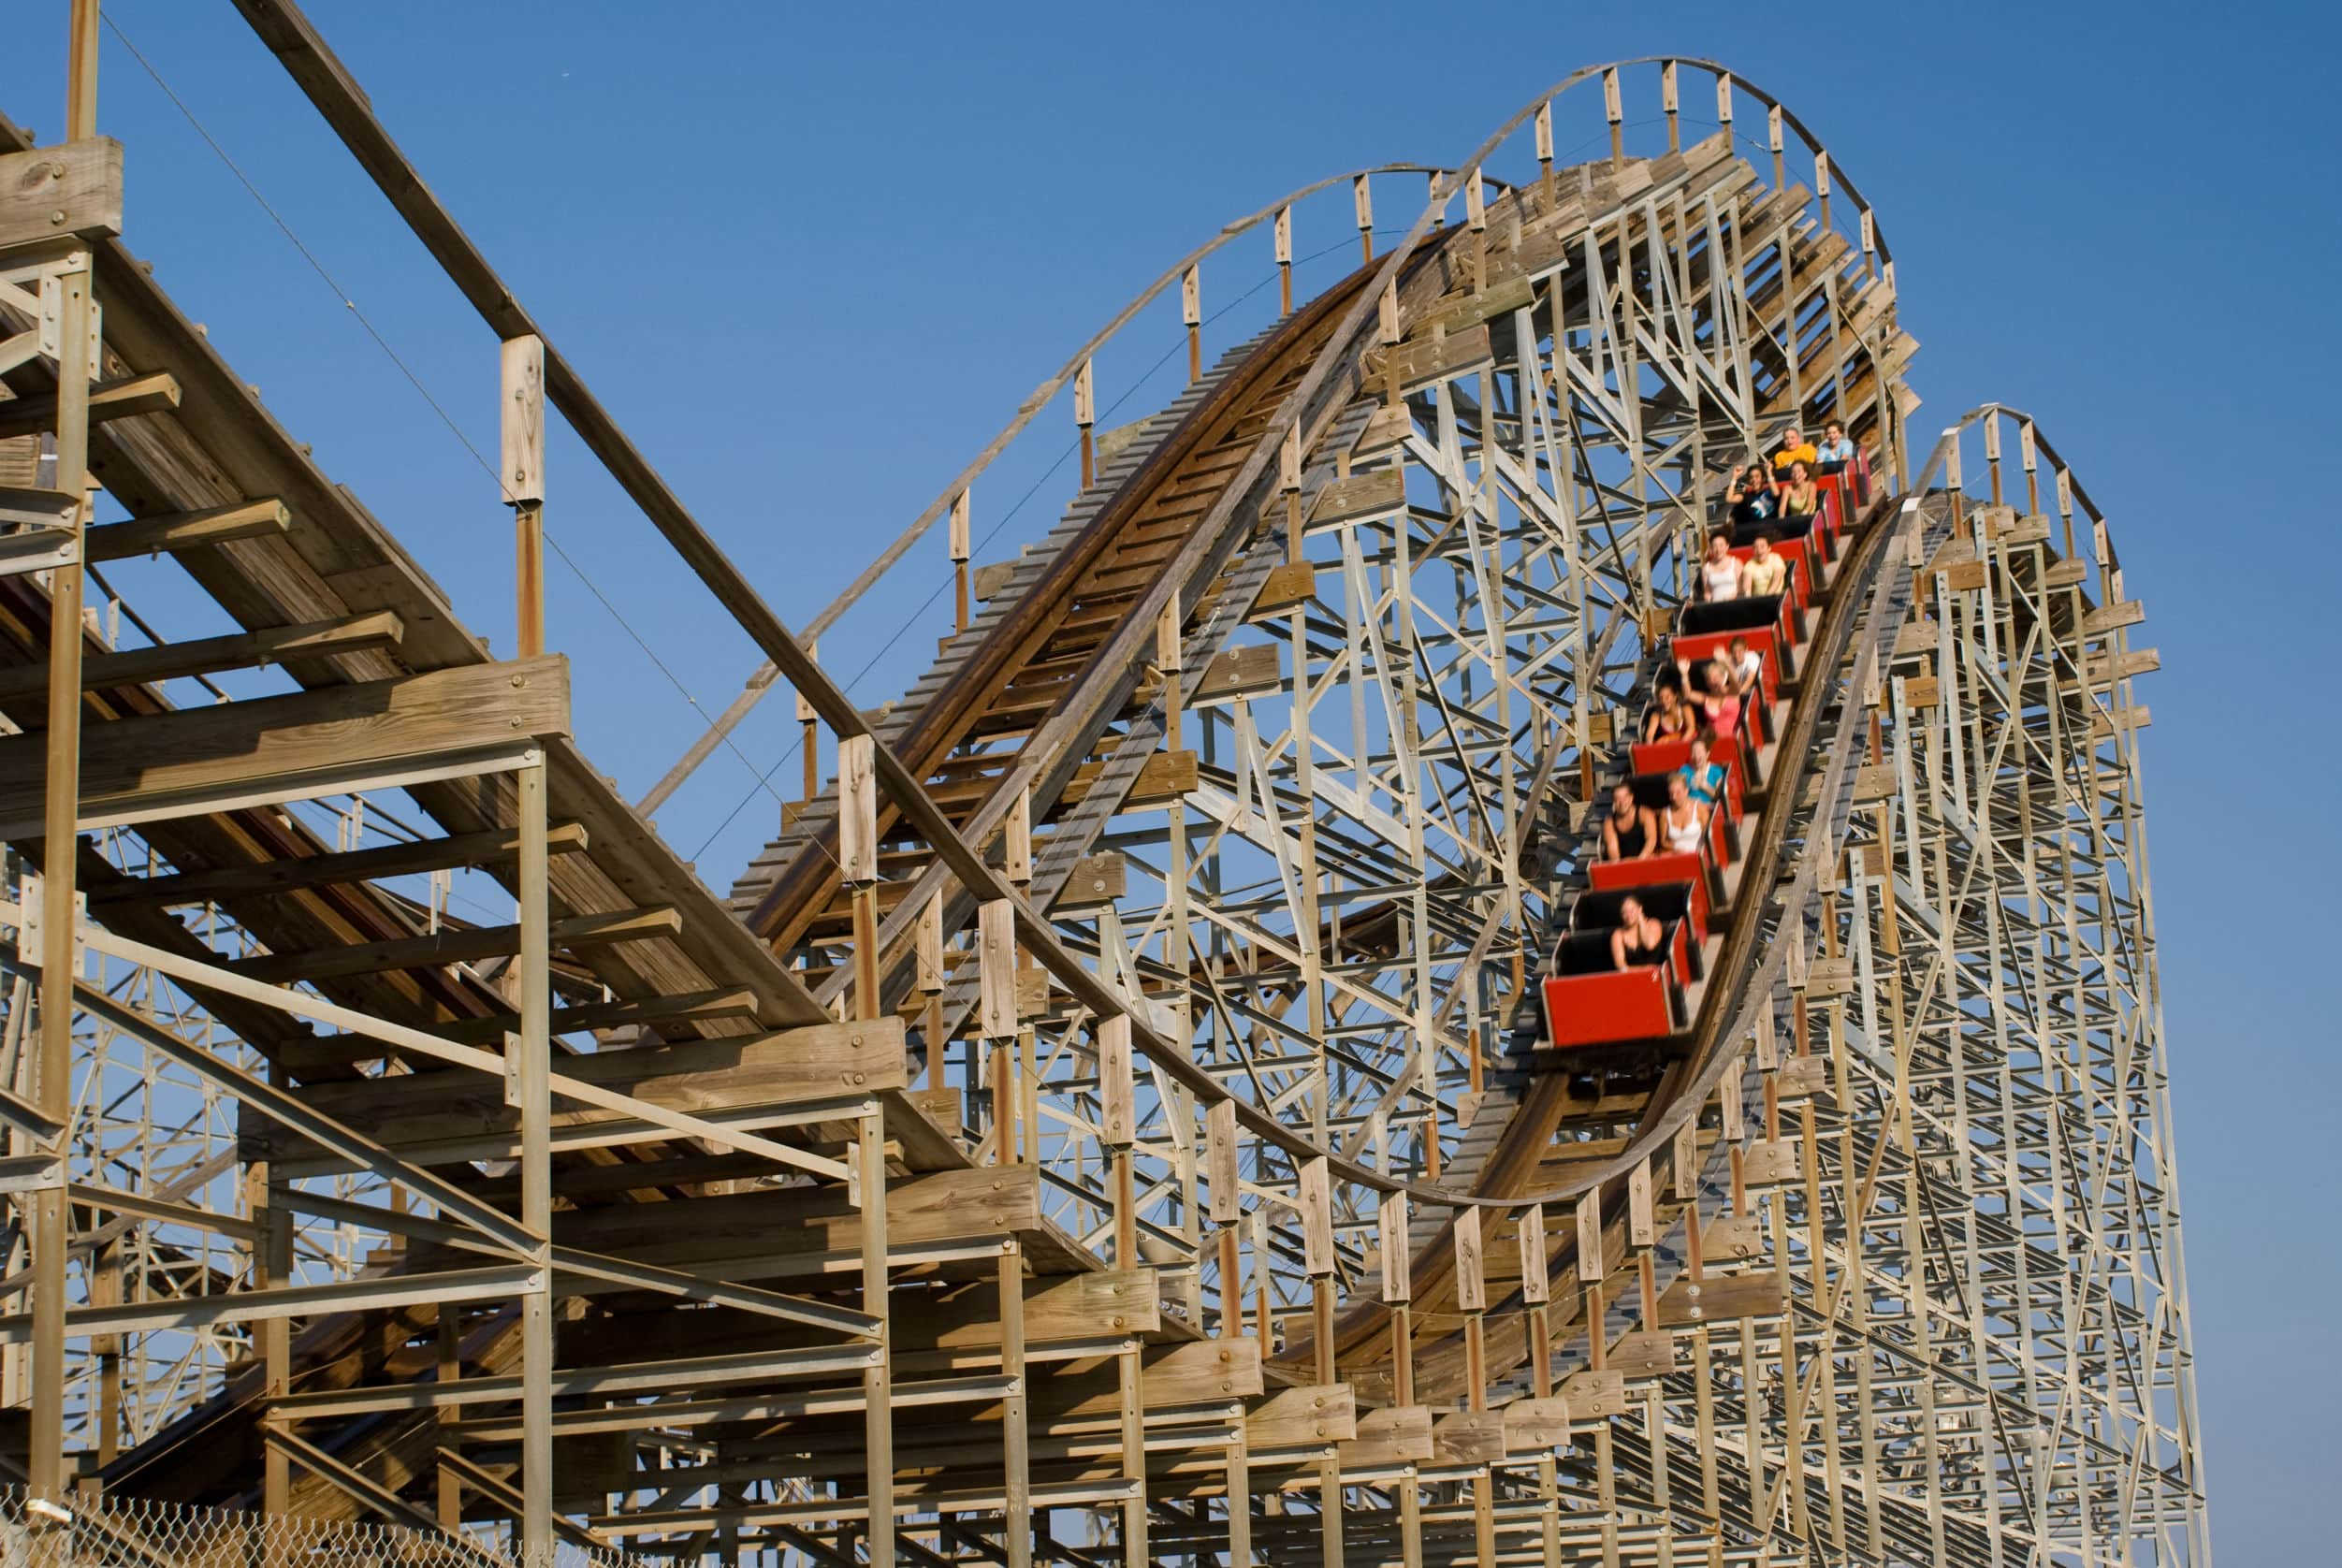 rollercoaster as metaphor for tight labor market